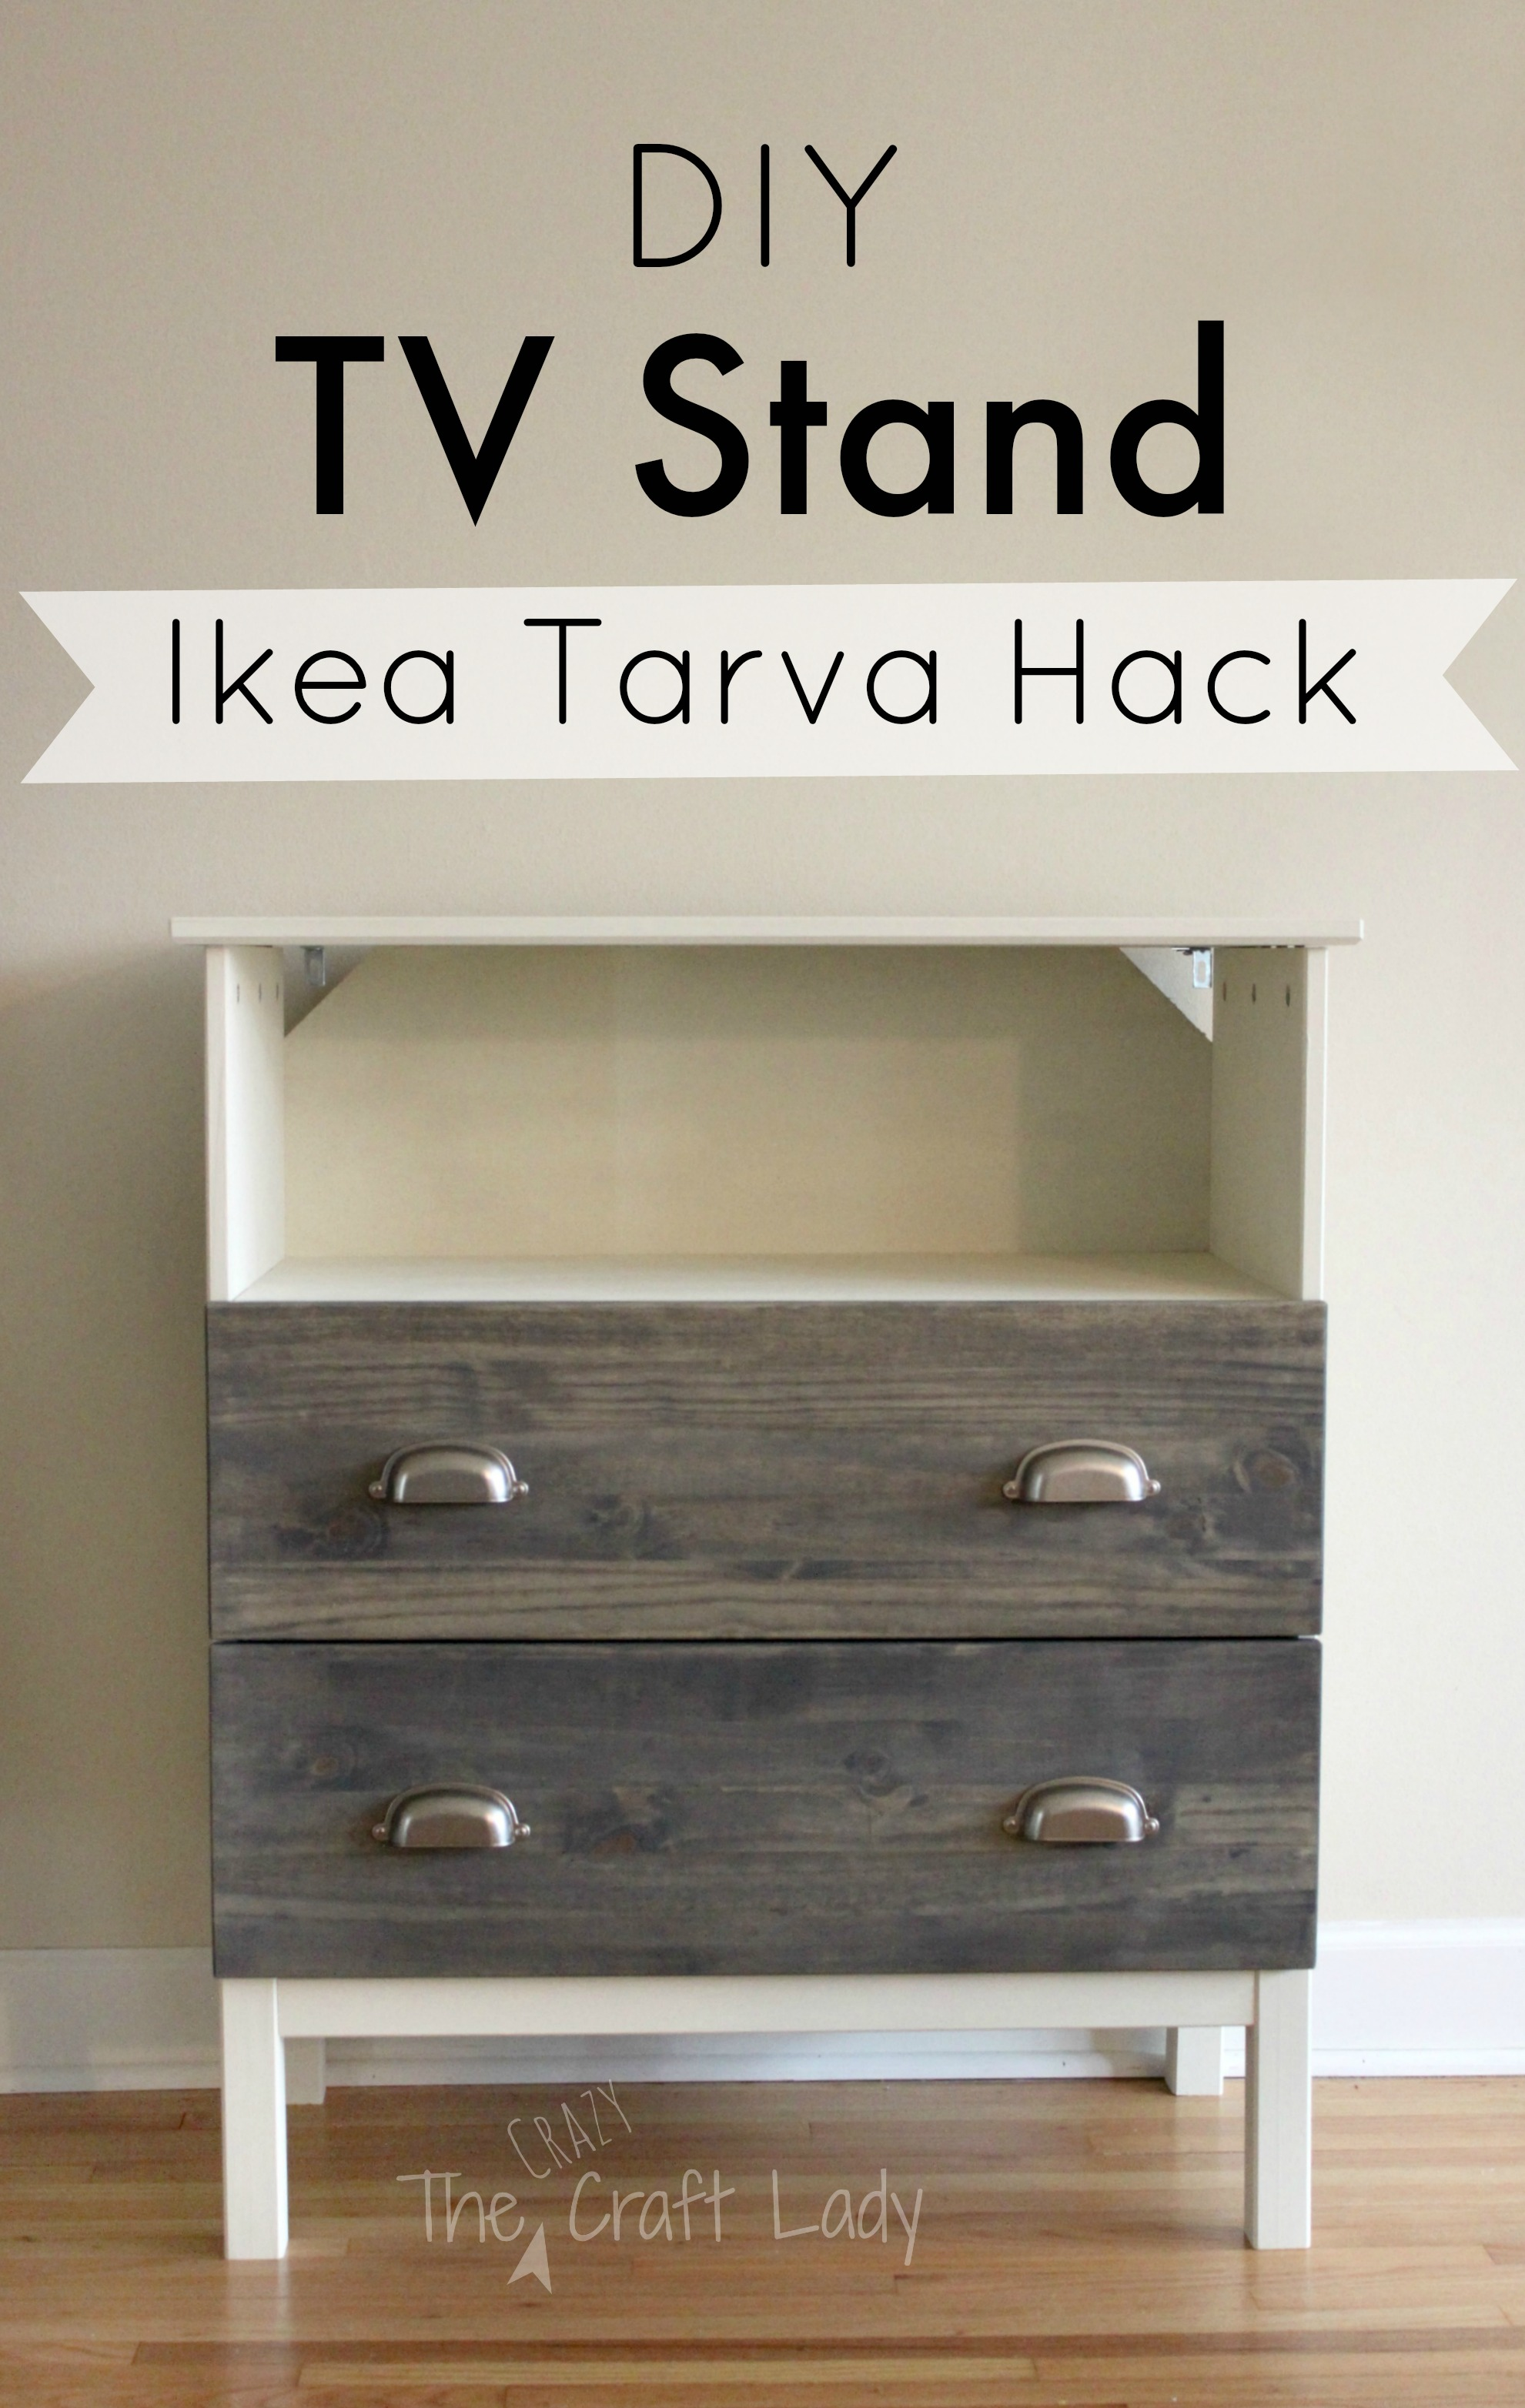 ikea tarva hack from the crazy craft lady full tutorial for making a custom tv